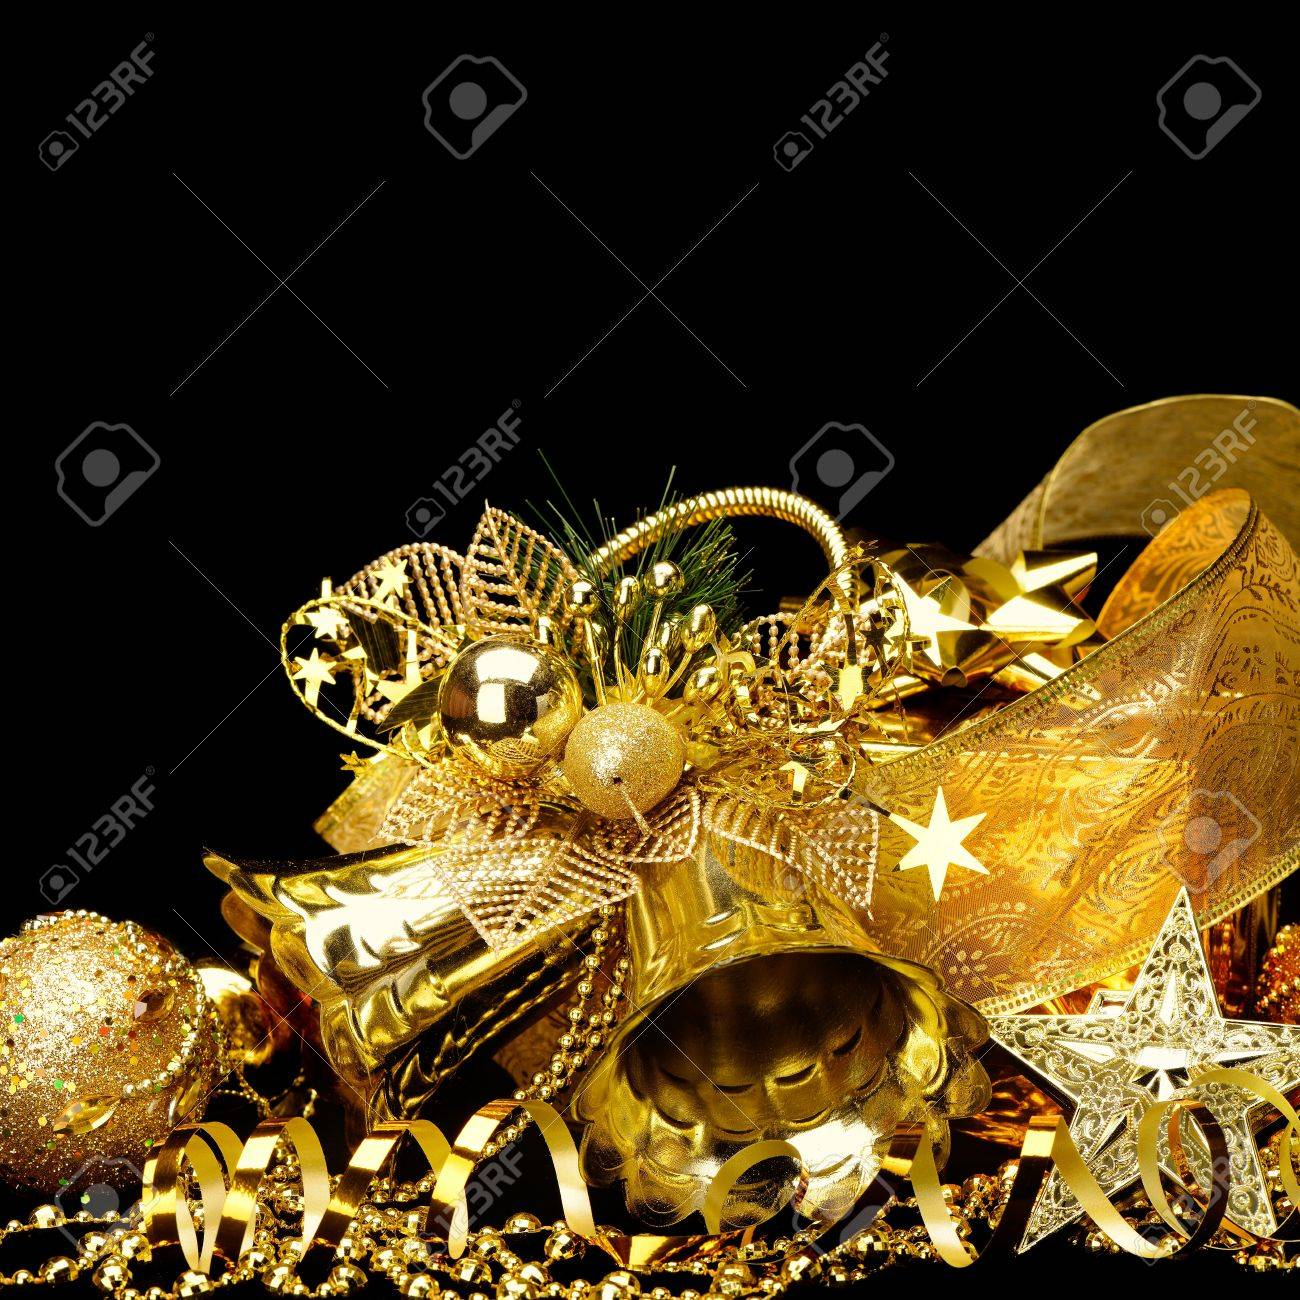 Gold Christmas Decorations Boxes Ribbons Stars Bells On Black